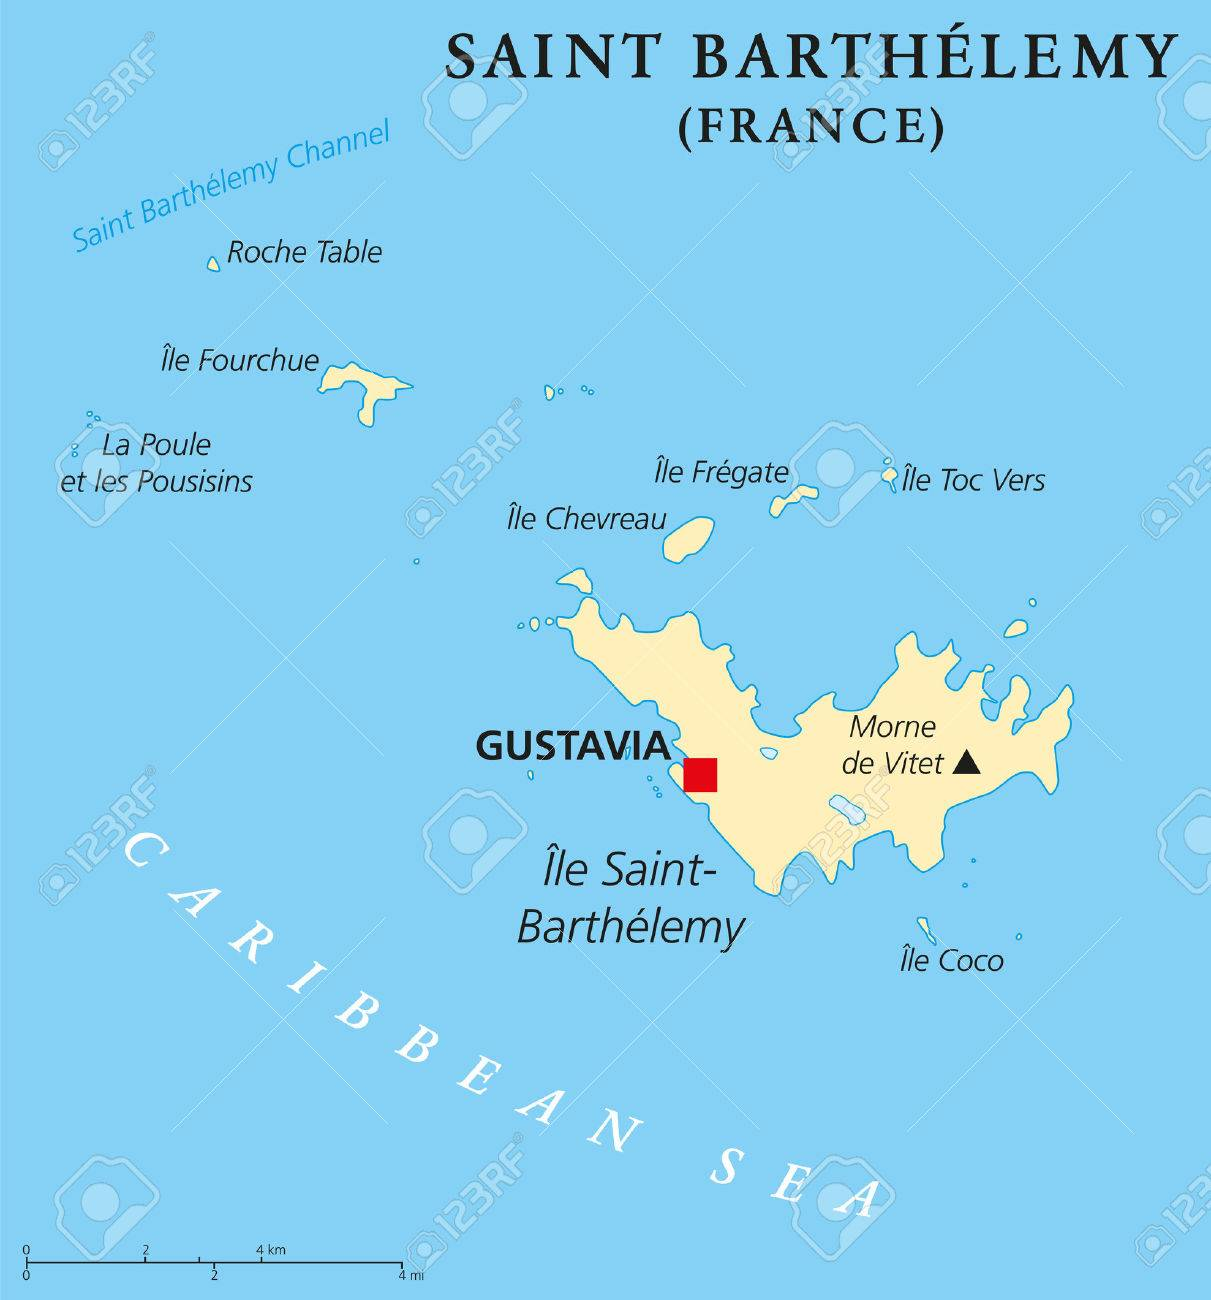 Saint barthelemy political map with capital gustavia also called saint barthelemy political map with capital gustavia also called st barts or st barths publicscrutiny Choice Image